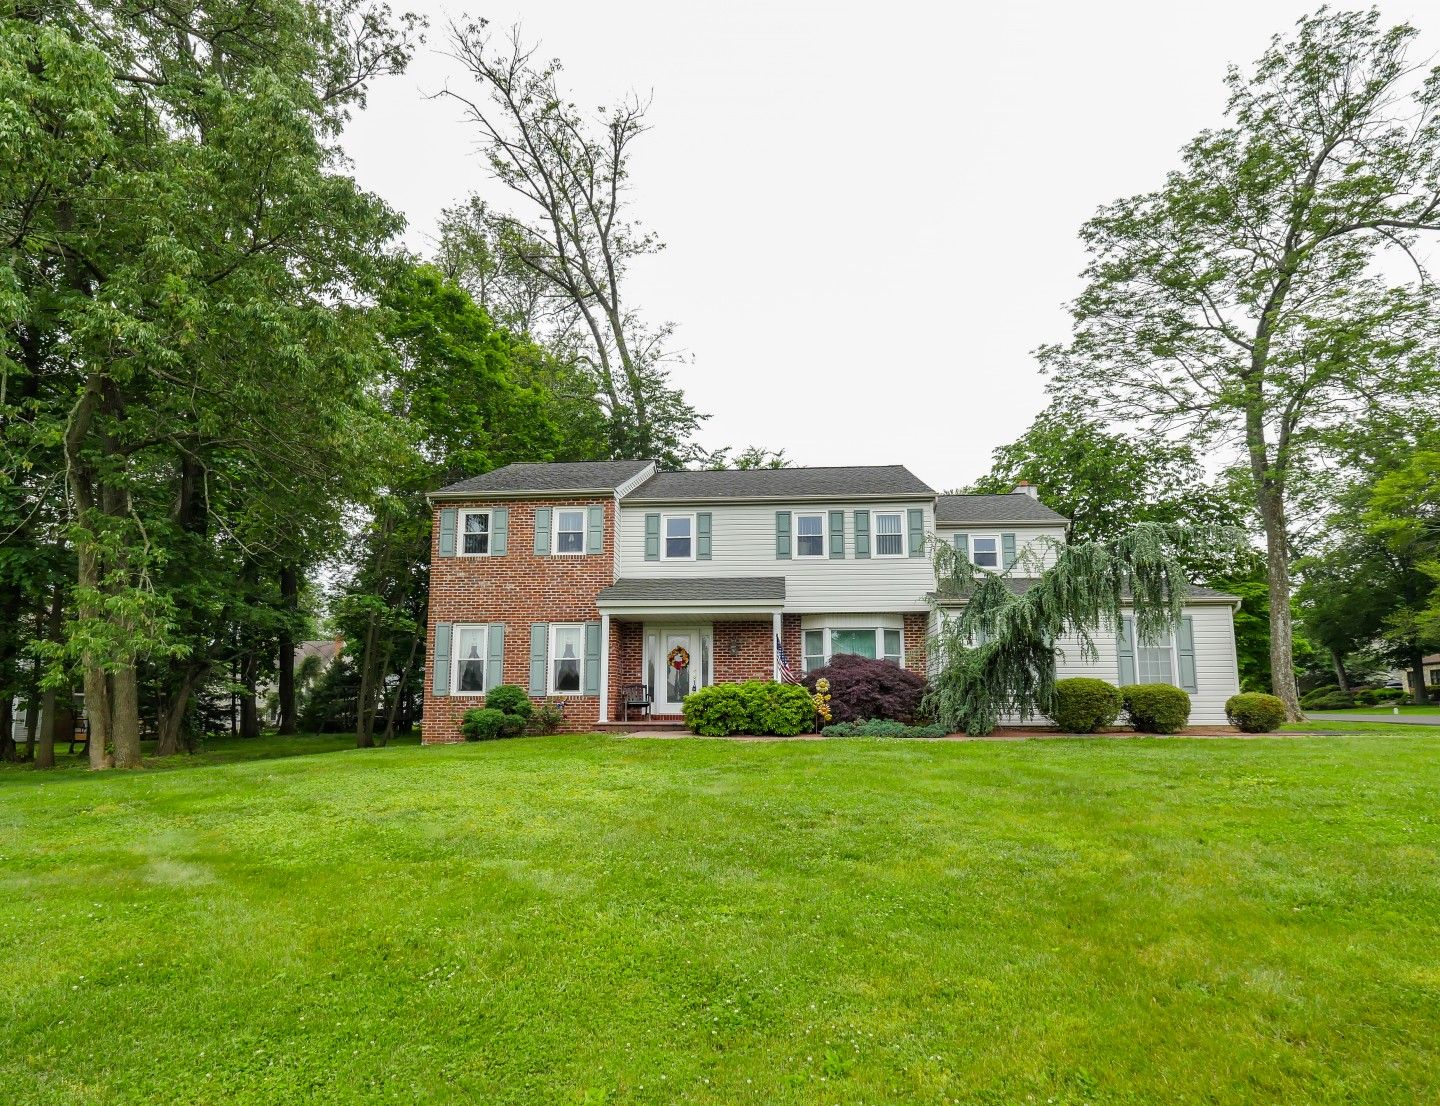 Pin on Bucks County Real Estate Video Tours Homes For Sale